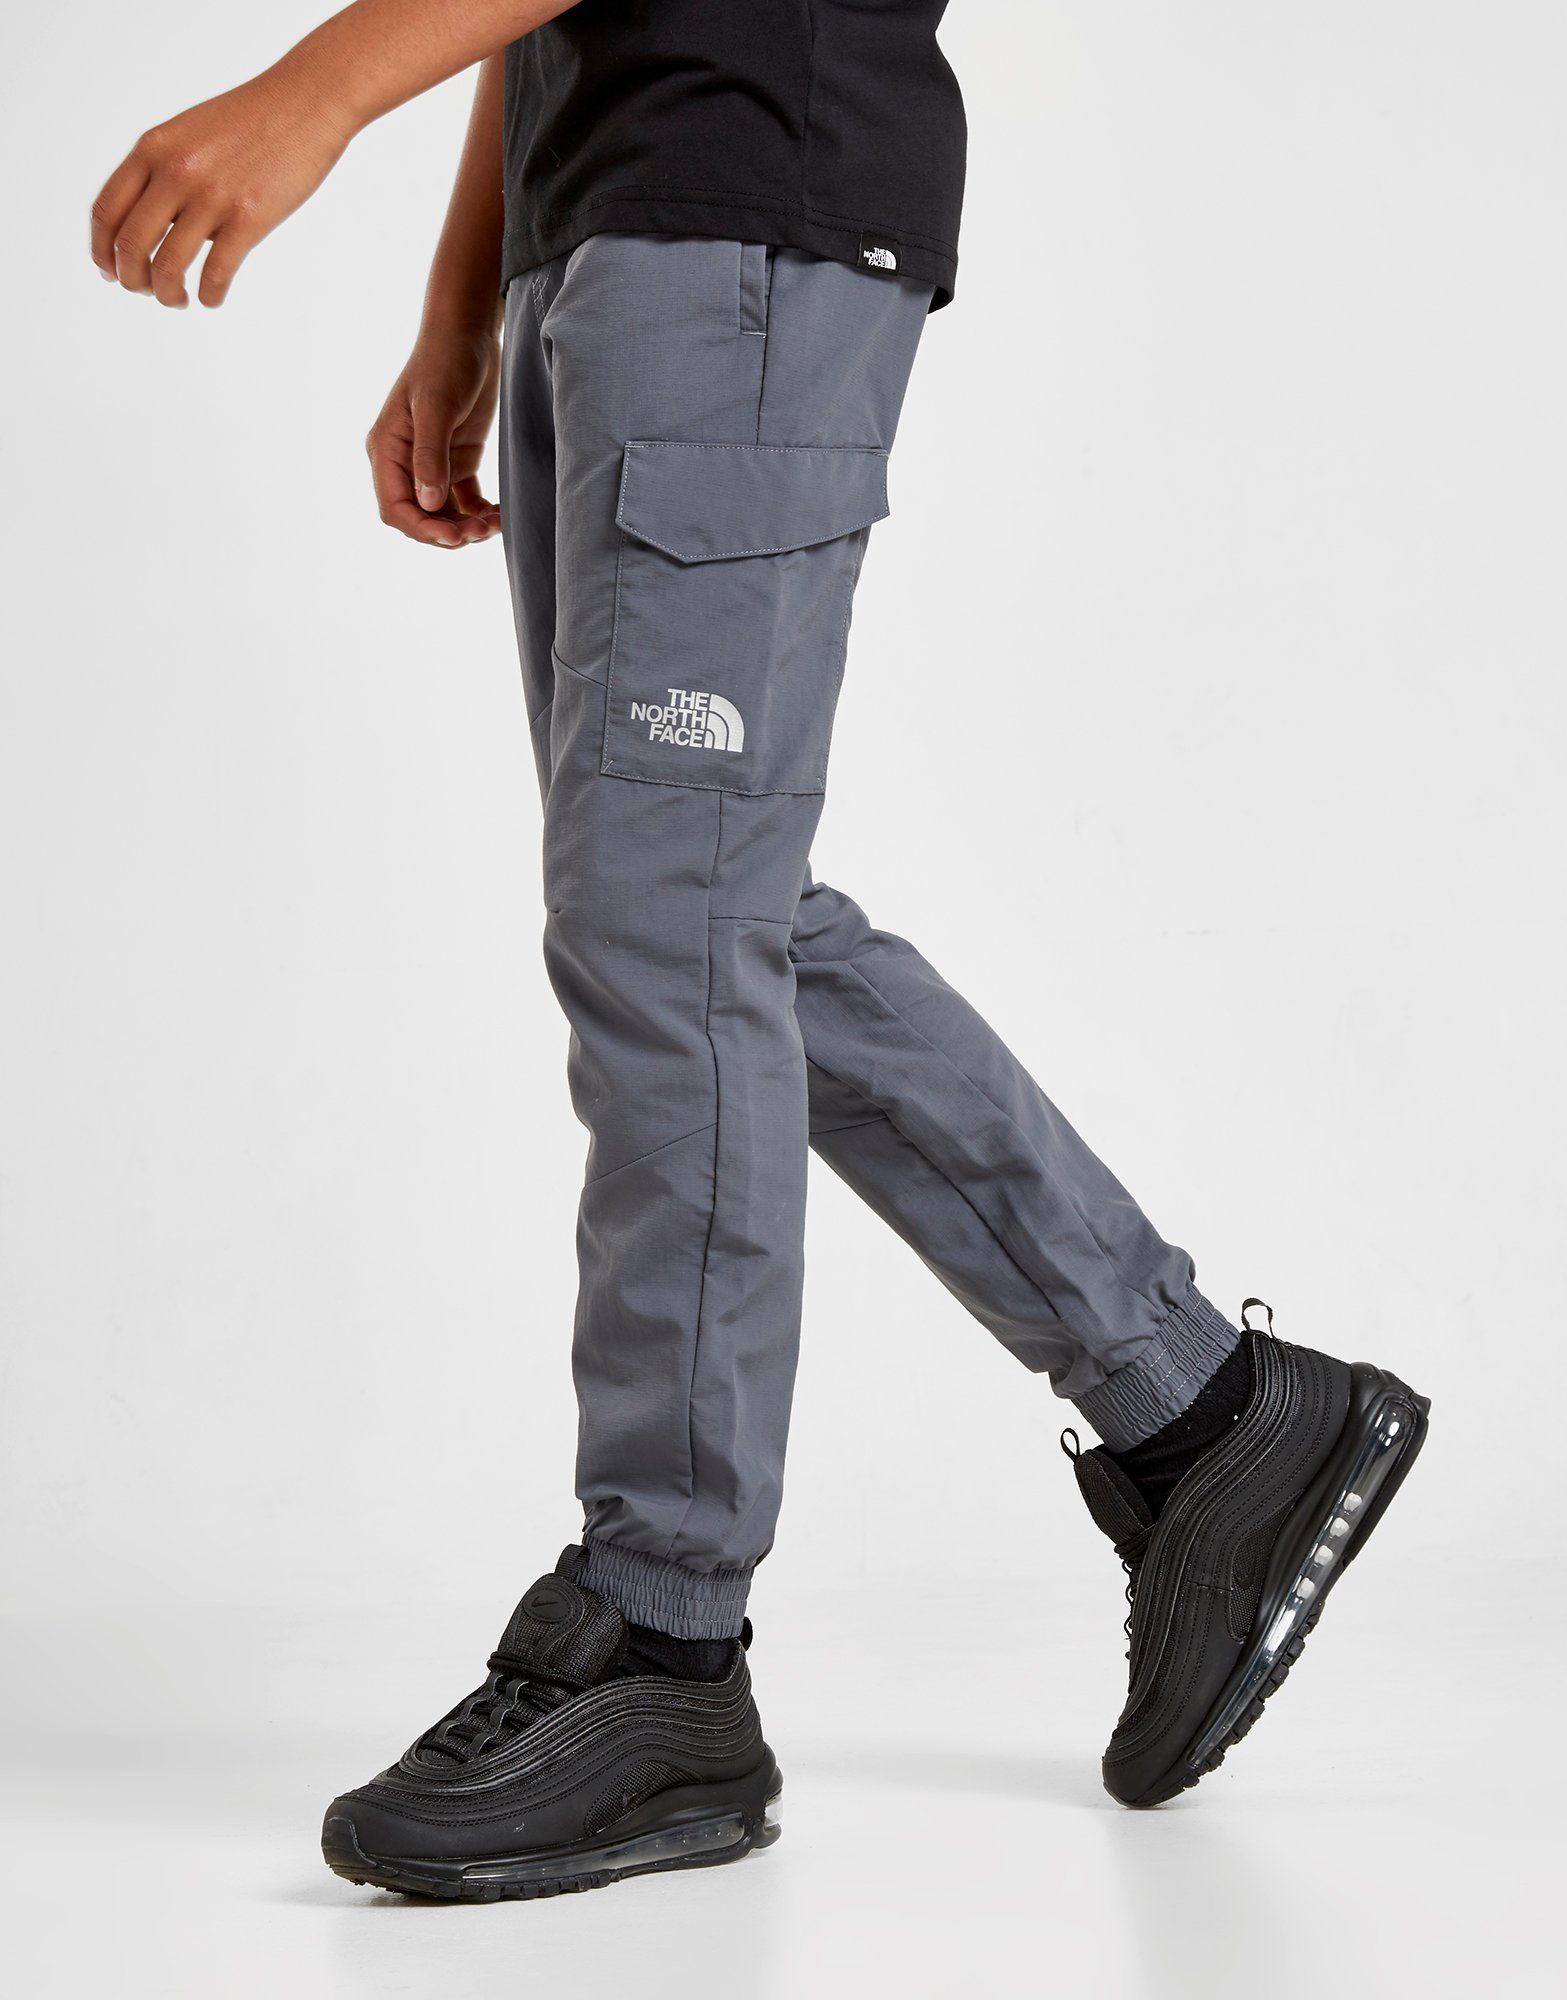 shopping uk availability great fit The North Face Woven Cargo Pants Junior | JD Sports Ireland